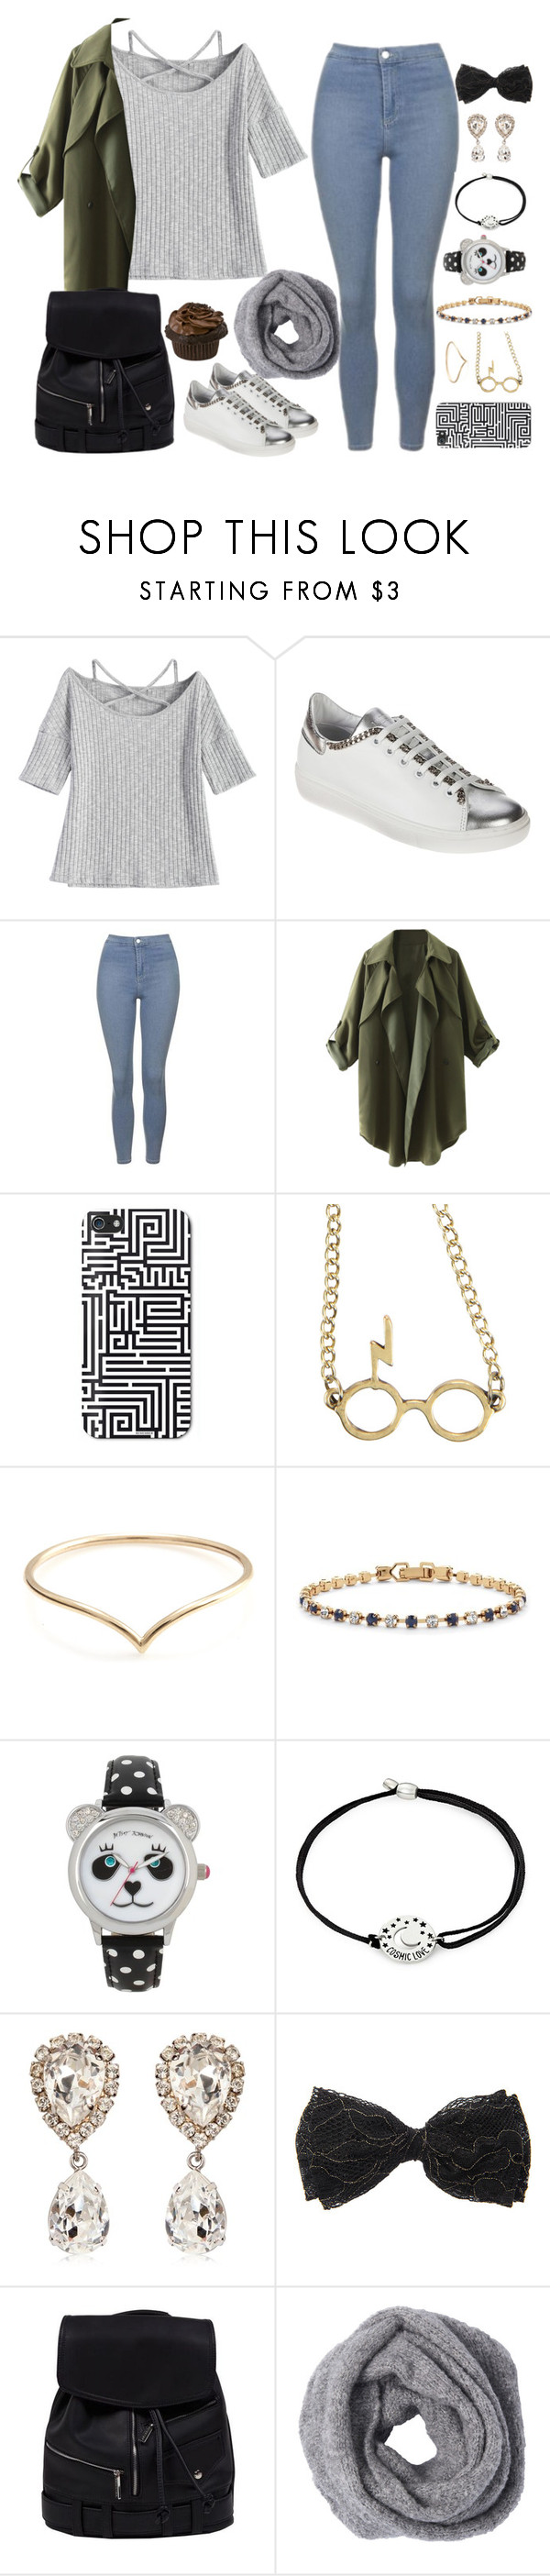 """let's walk // spring"" by cecilialukas ❤ liked on Polyvore featuring Topshop, ZENTS, Warner Bros., Palm Beach Jewelry, Betsey Johnson, Alex and Ani and Dolce&Gabbana"